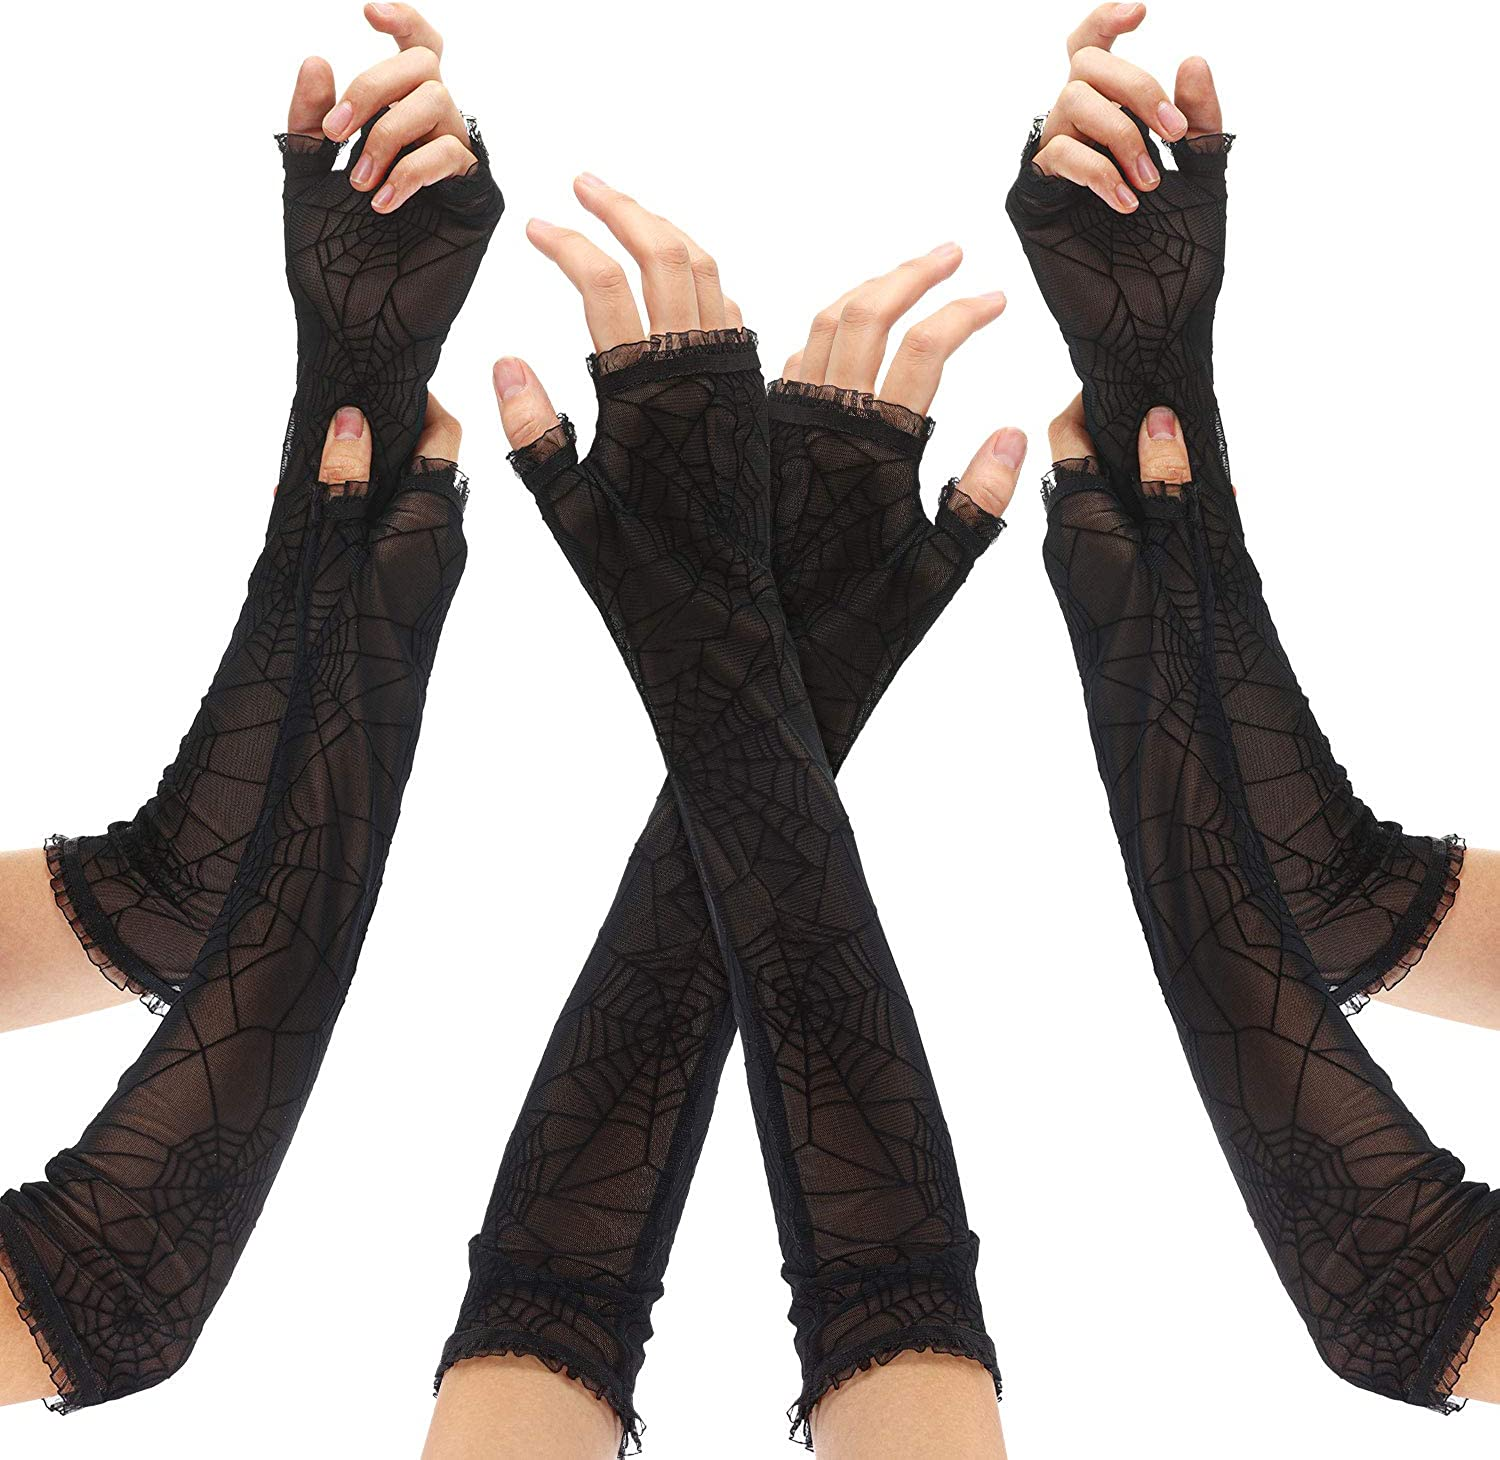 3 Pairs Spider Web Arm Warmers Women Spiderweb Fingerless Long Arm Warmer for Halloween Cosplay Party, Black